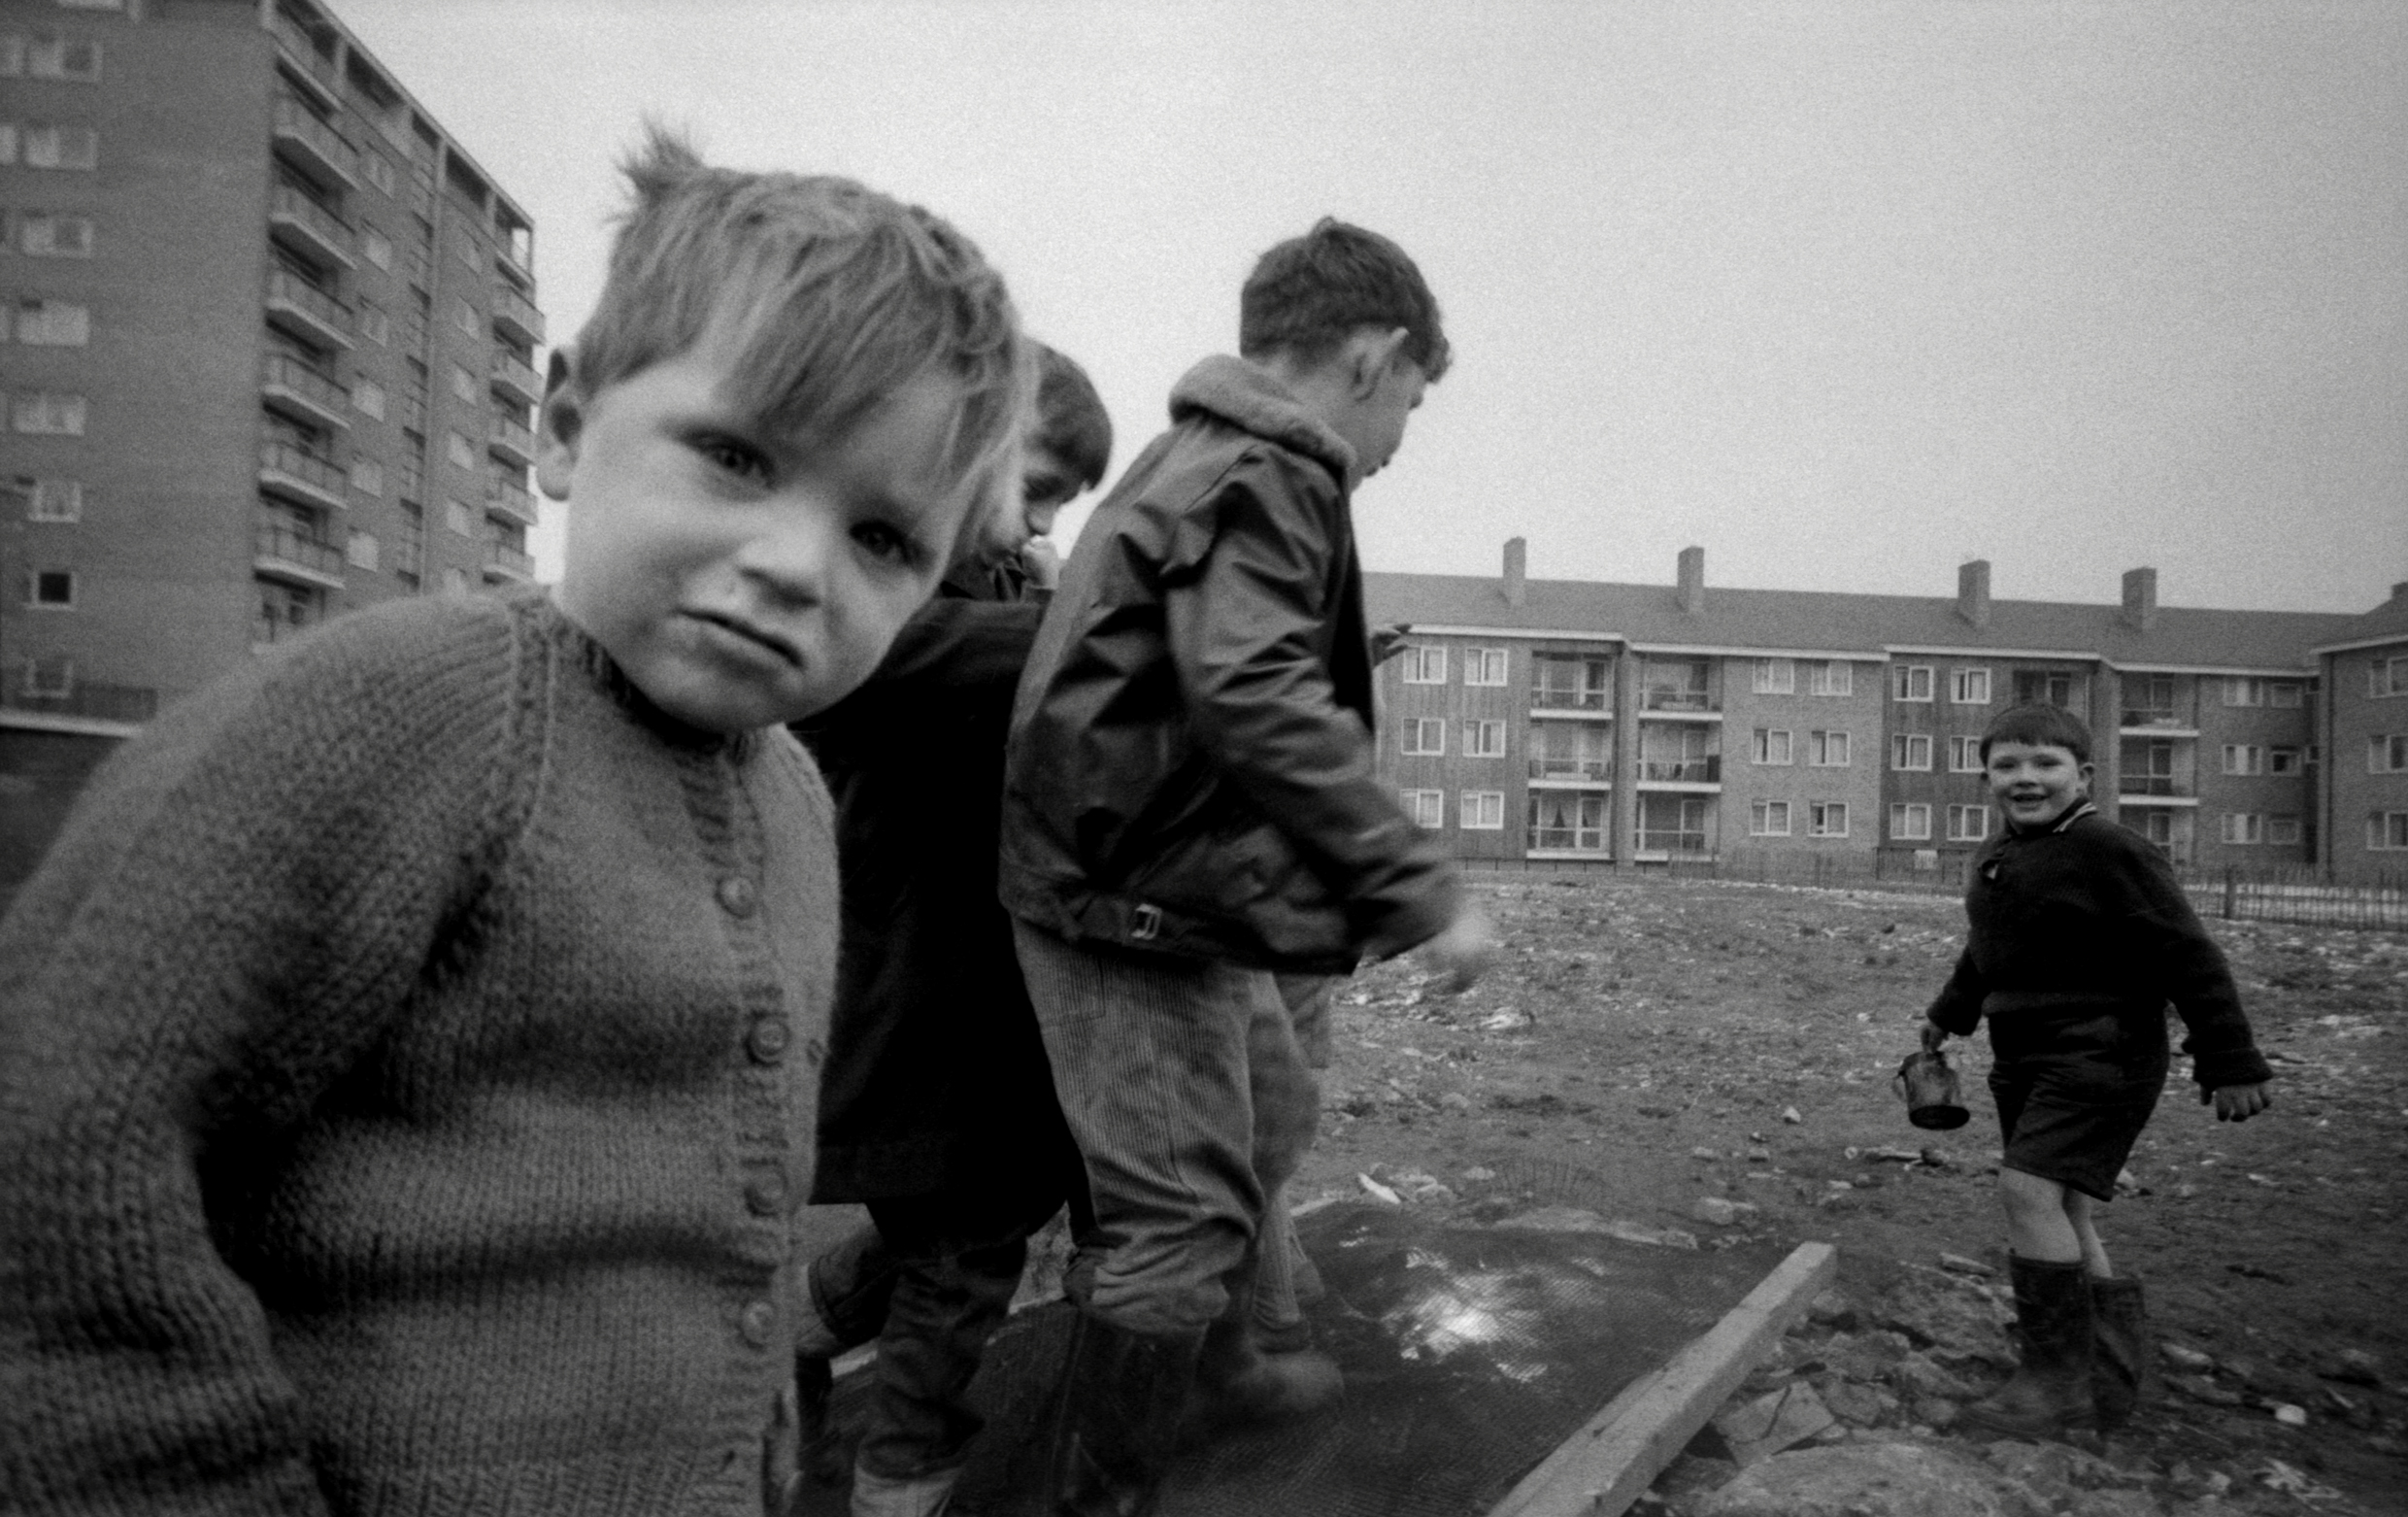 Boy in Cardie, Harrow Road, London, 1962